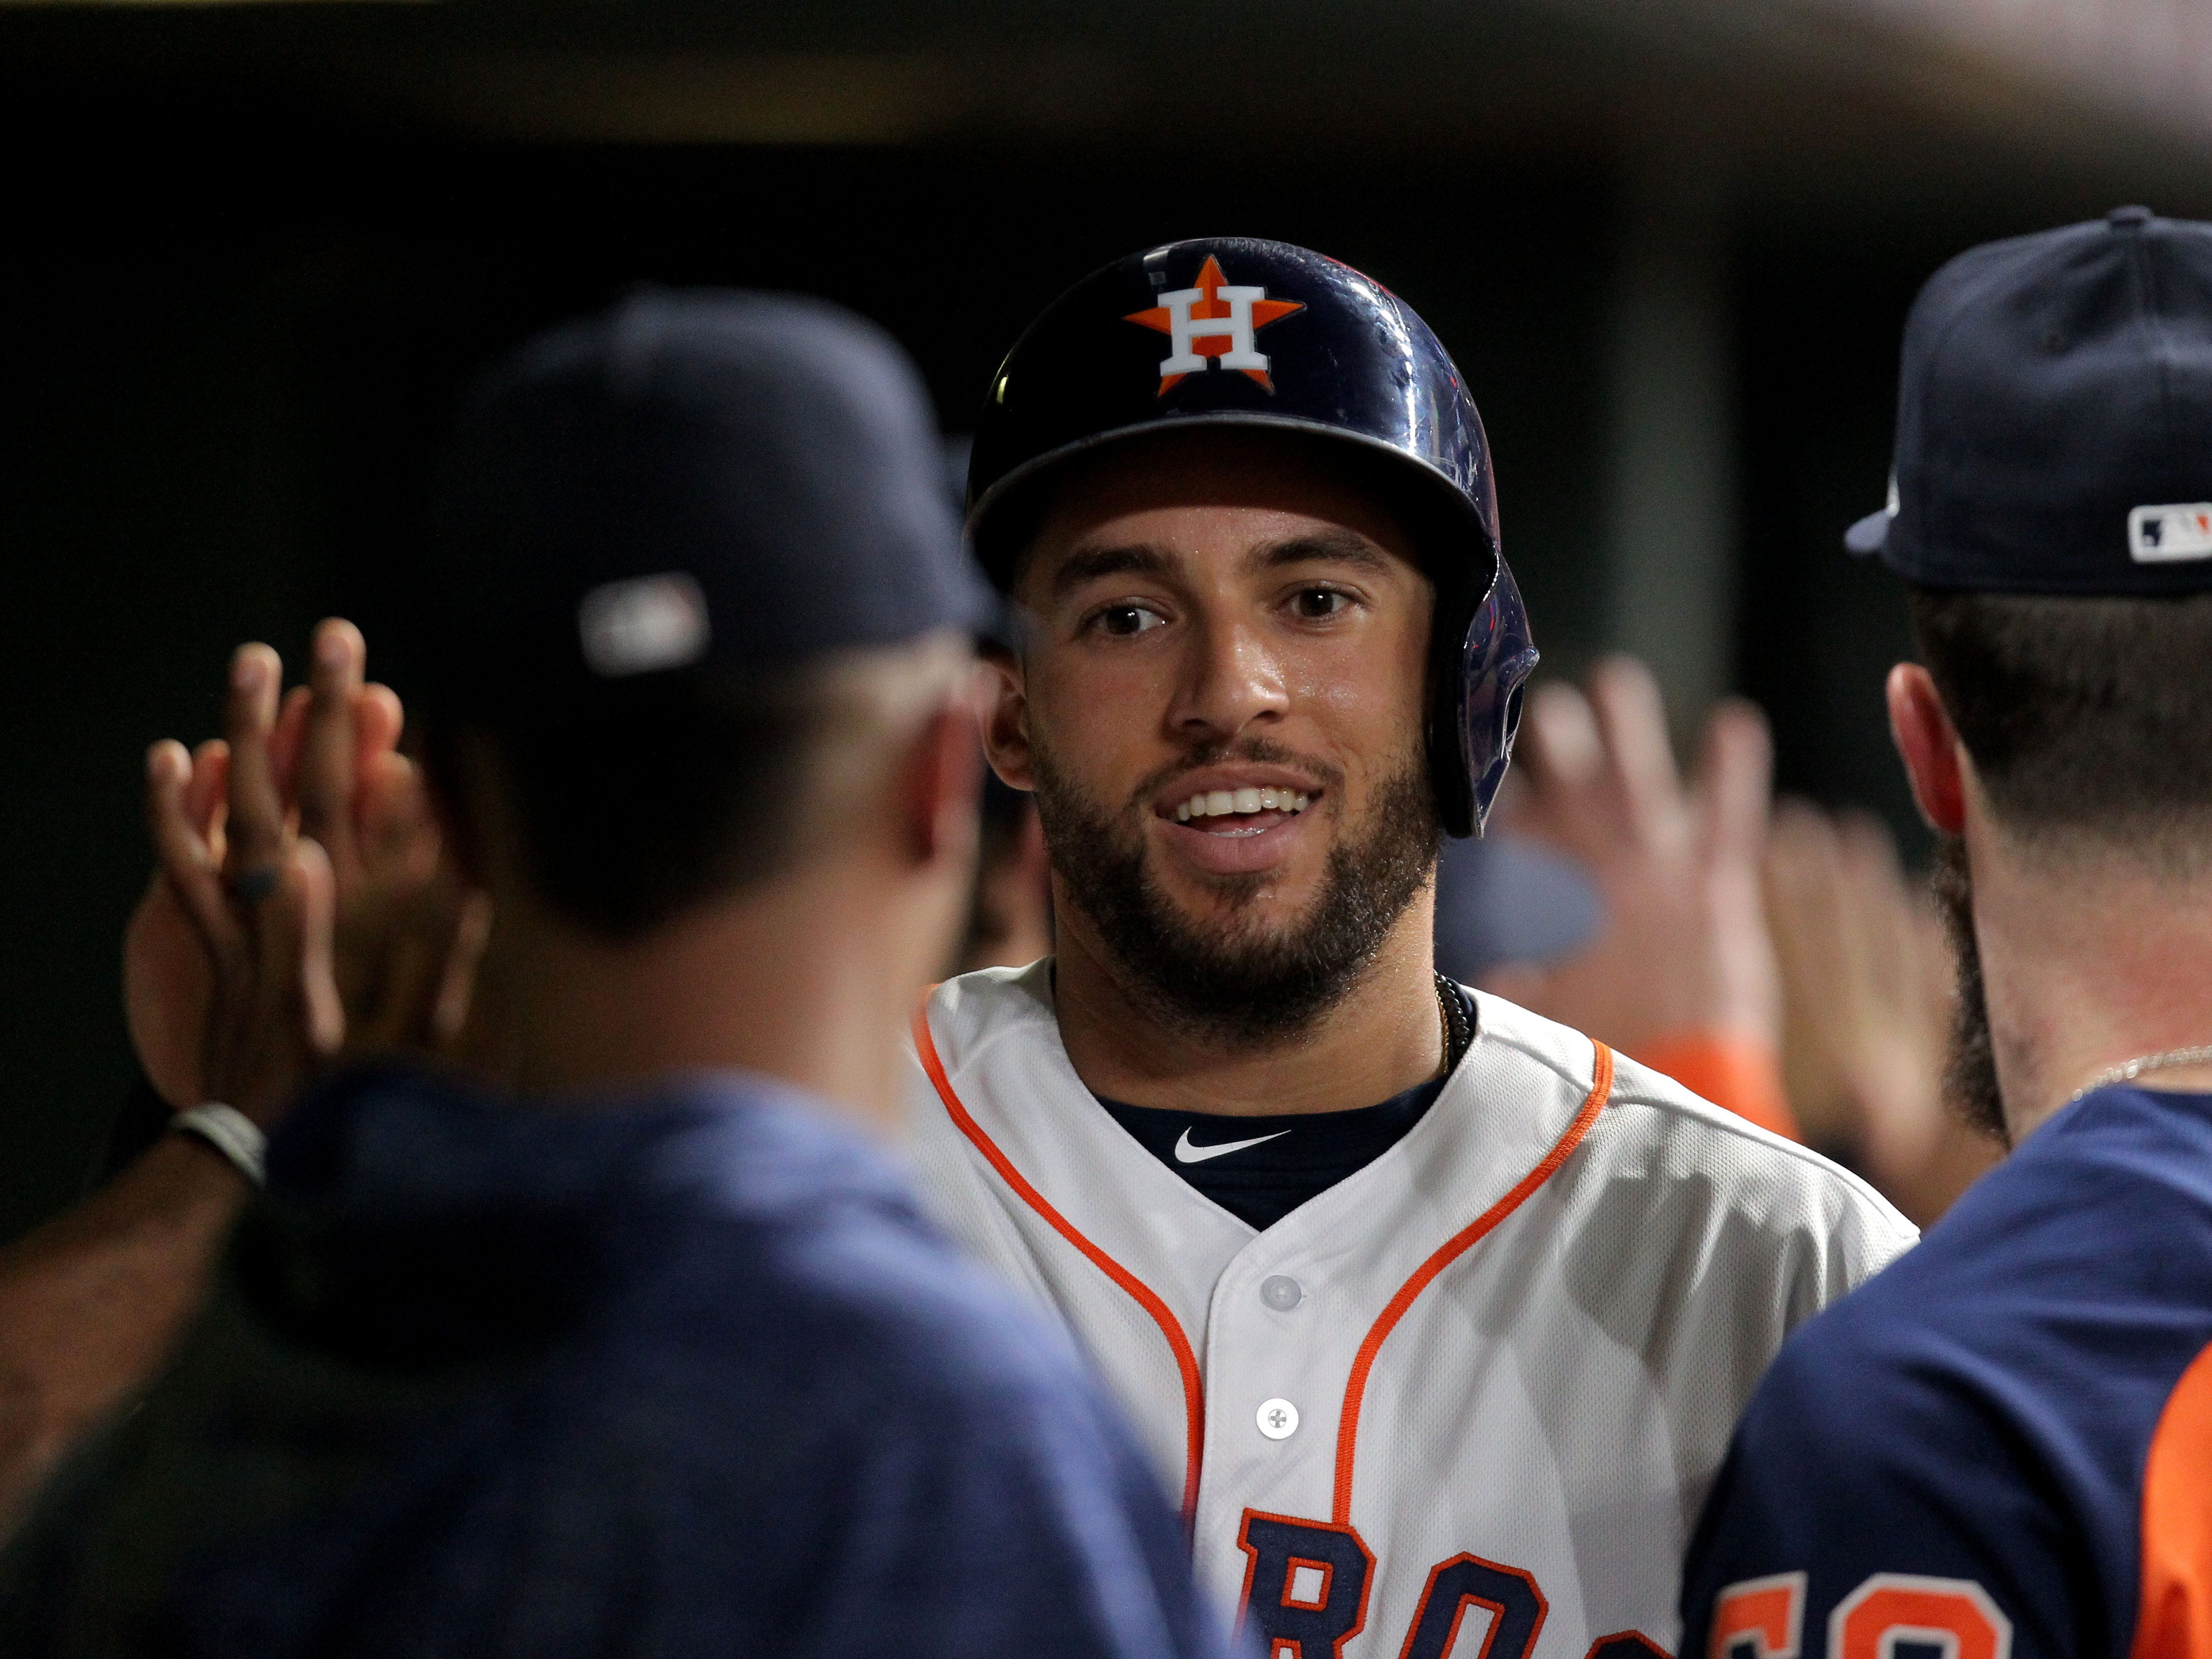 Sep 15, 2018; Houston, TX, USA; Houston Astros center fielder George Springer (4) is greeted in the dugout after scoring a run against the Arizona Diamondbacks during the fourth inning at Minute Maid Park. Mandatory Credit: Erik Williams-USA TODAY Sports